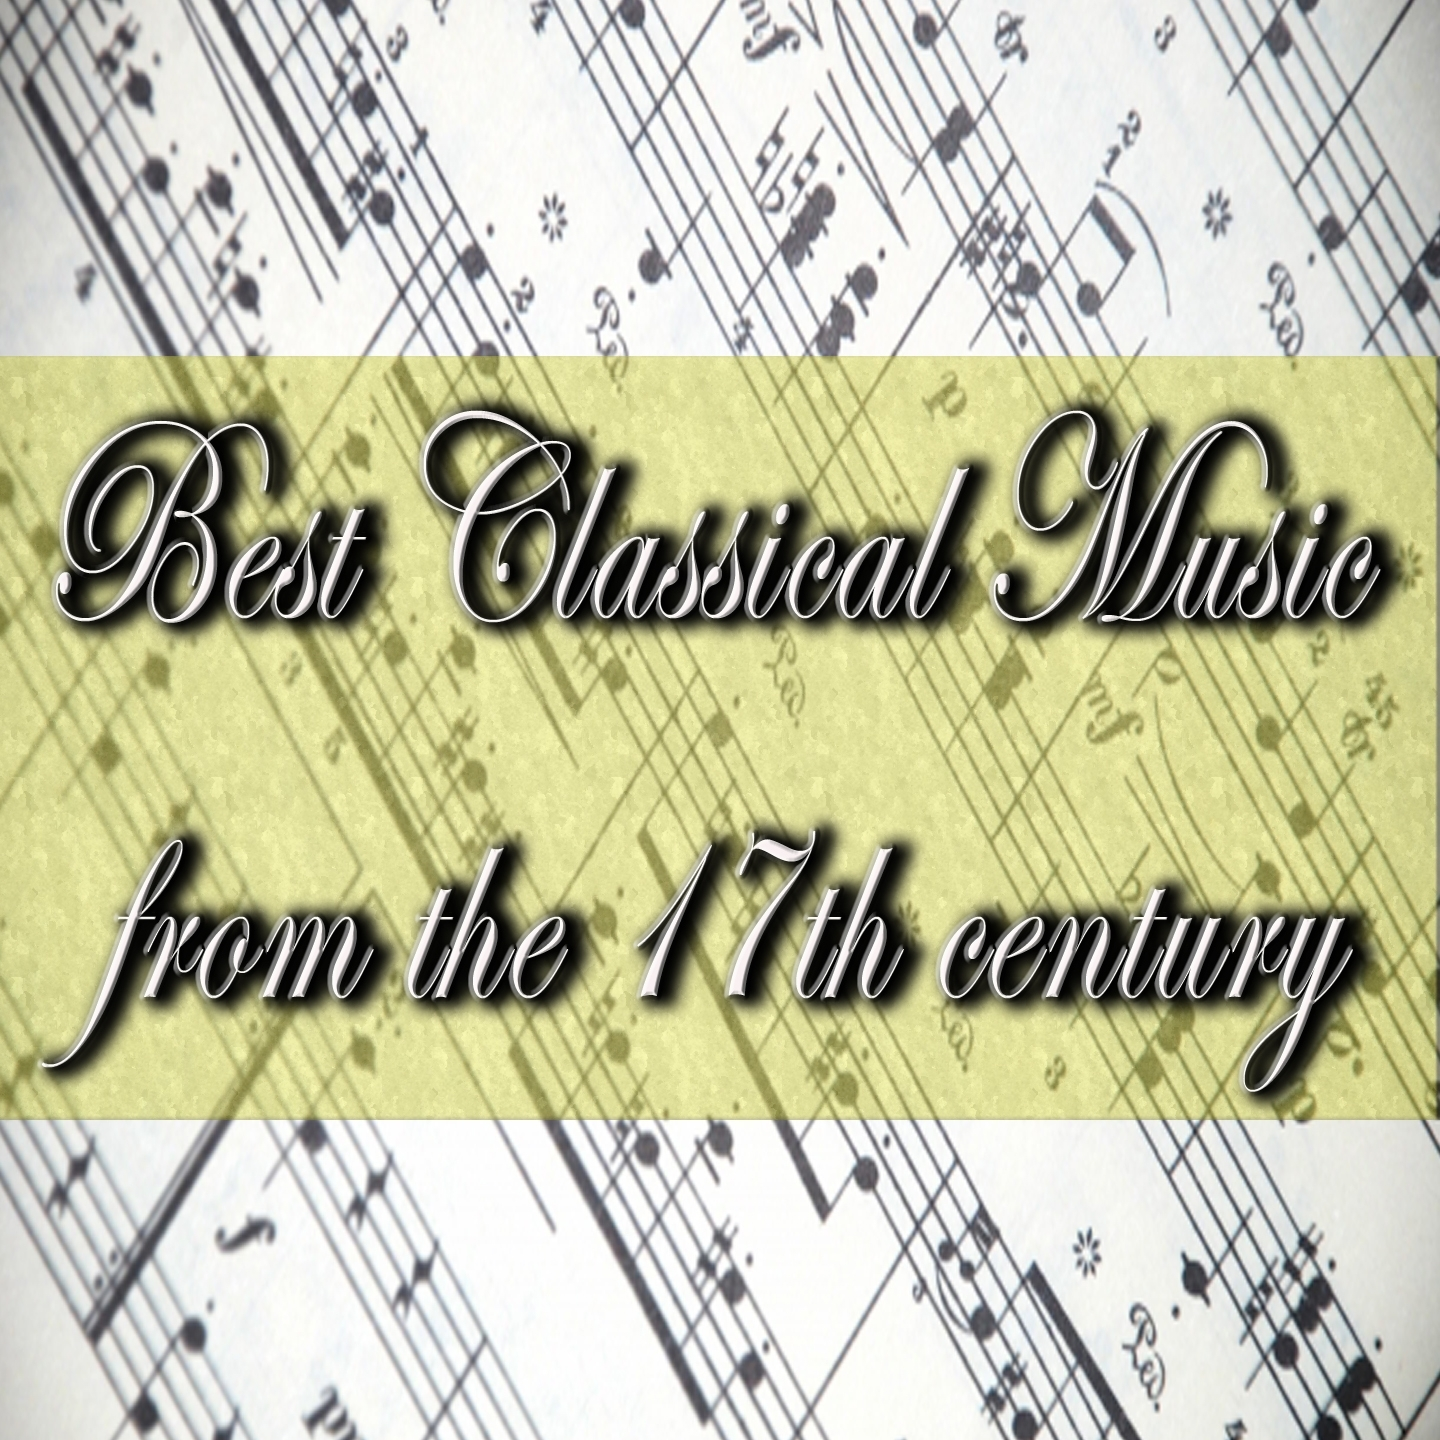 Best Classical Music from the 17th Century